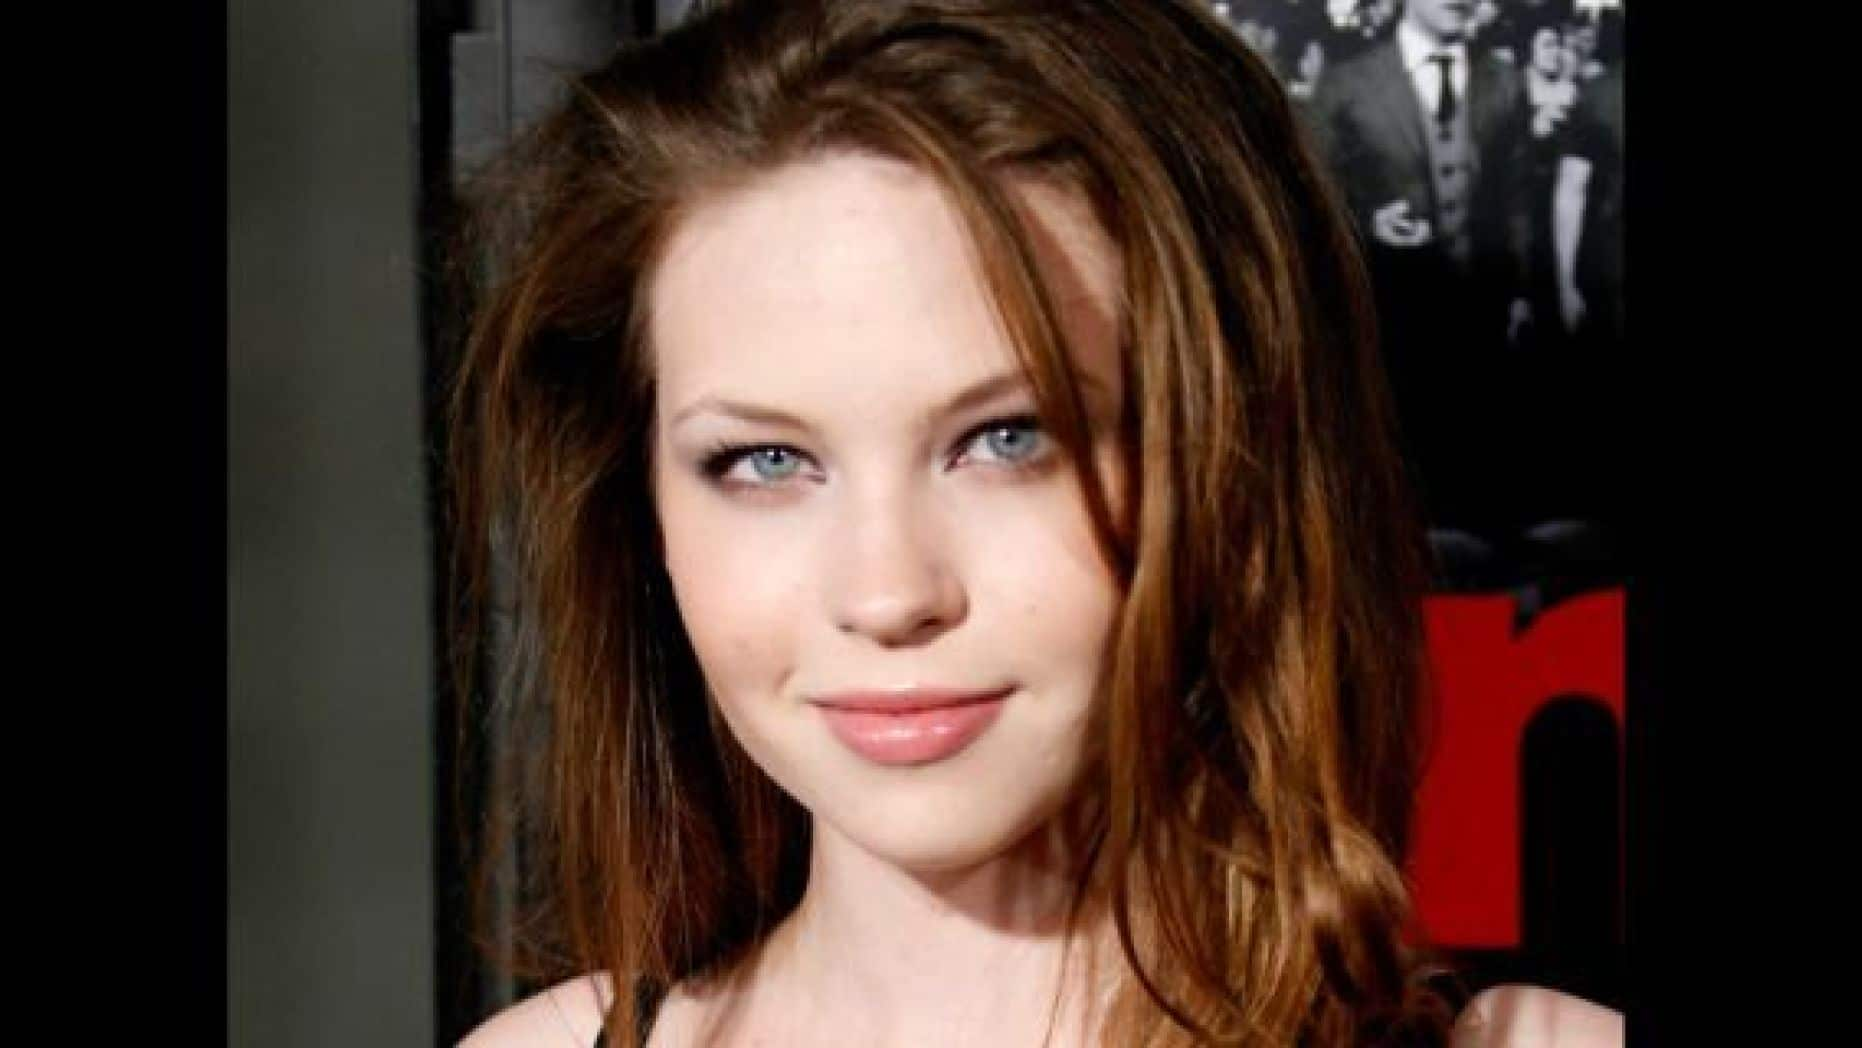 Daveigh Chase American Actress, Voice Actress, Singer, Model